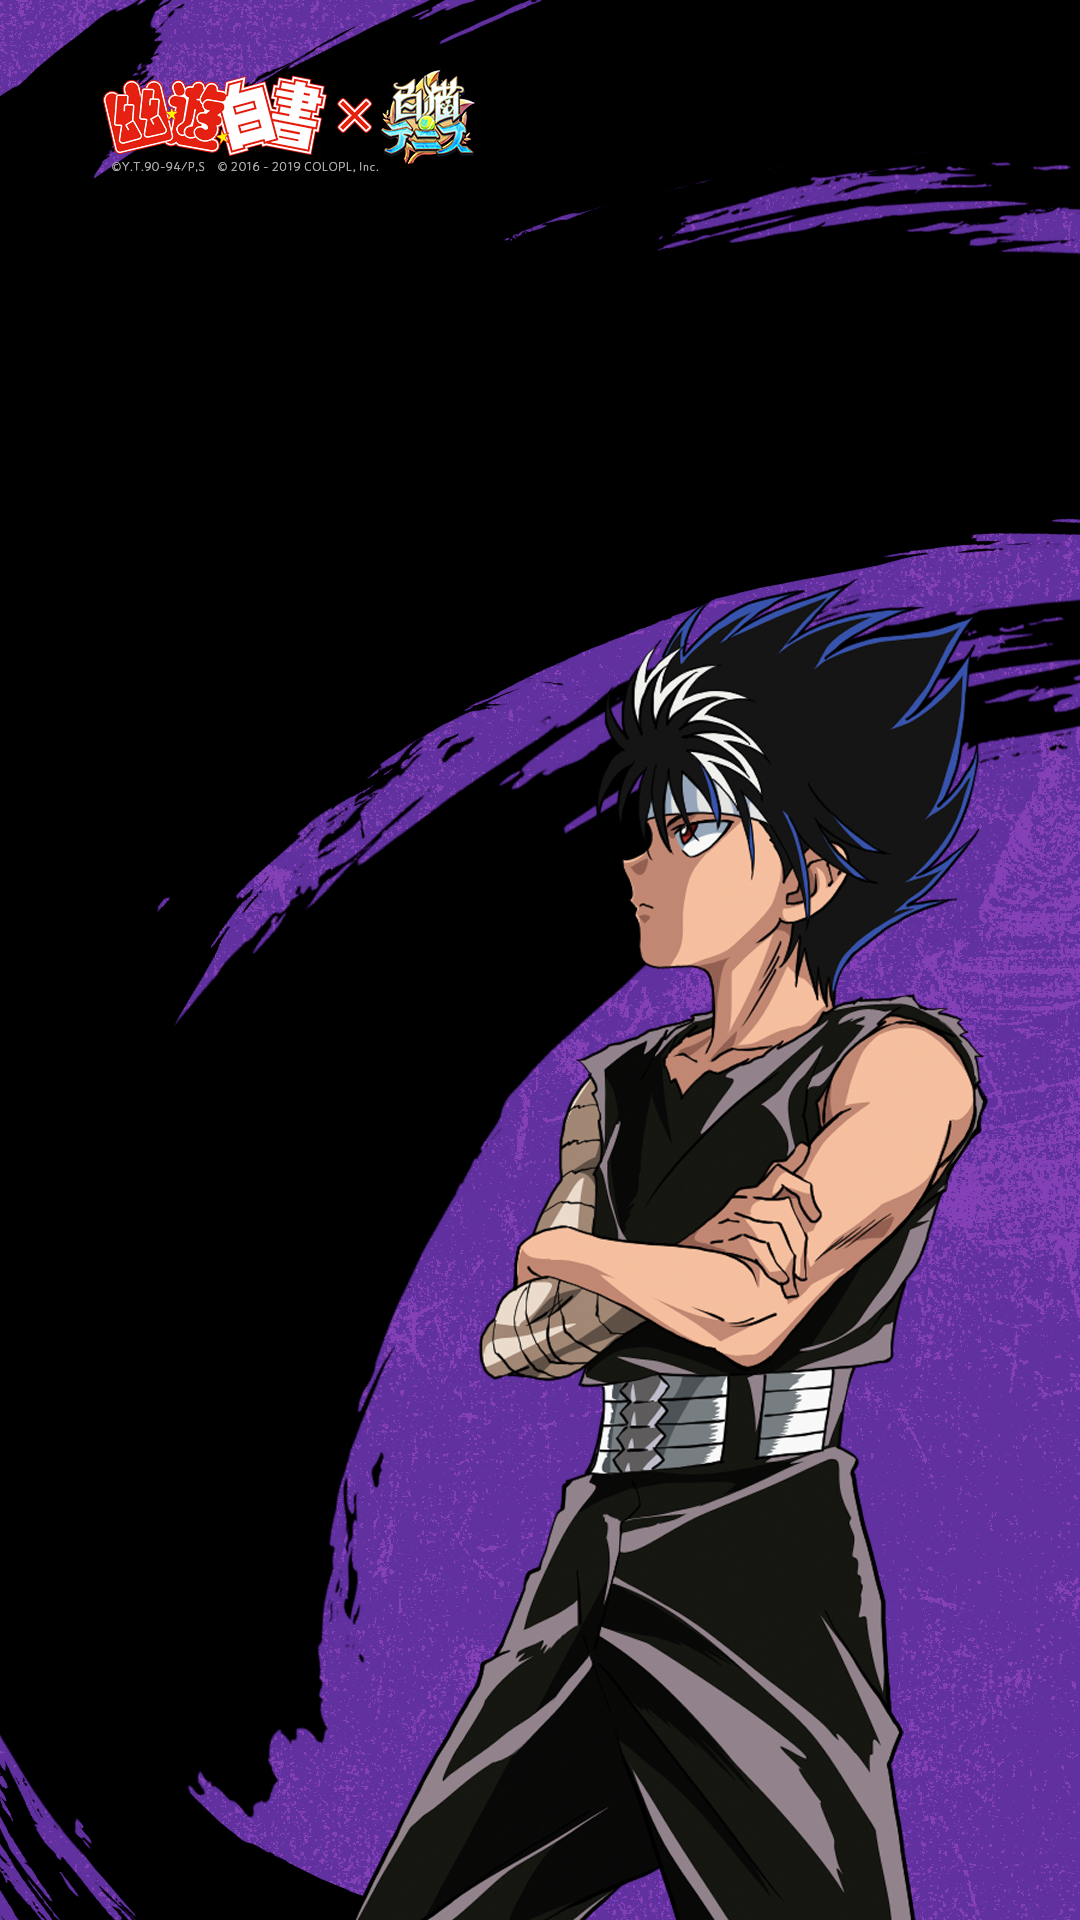 Hiei Wallpapers Top Free Hiei Backgrounds Wallpaperaccess